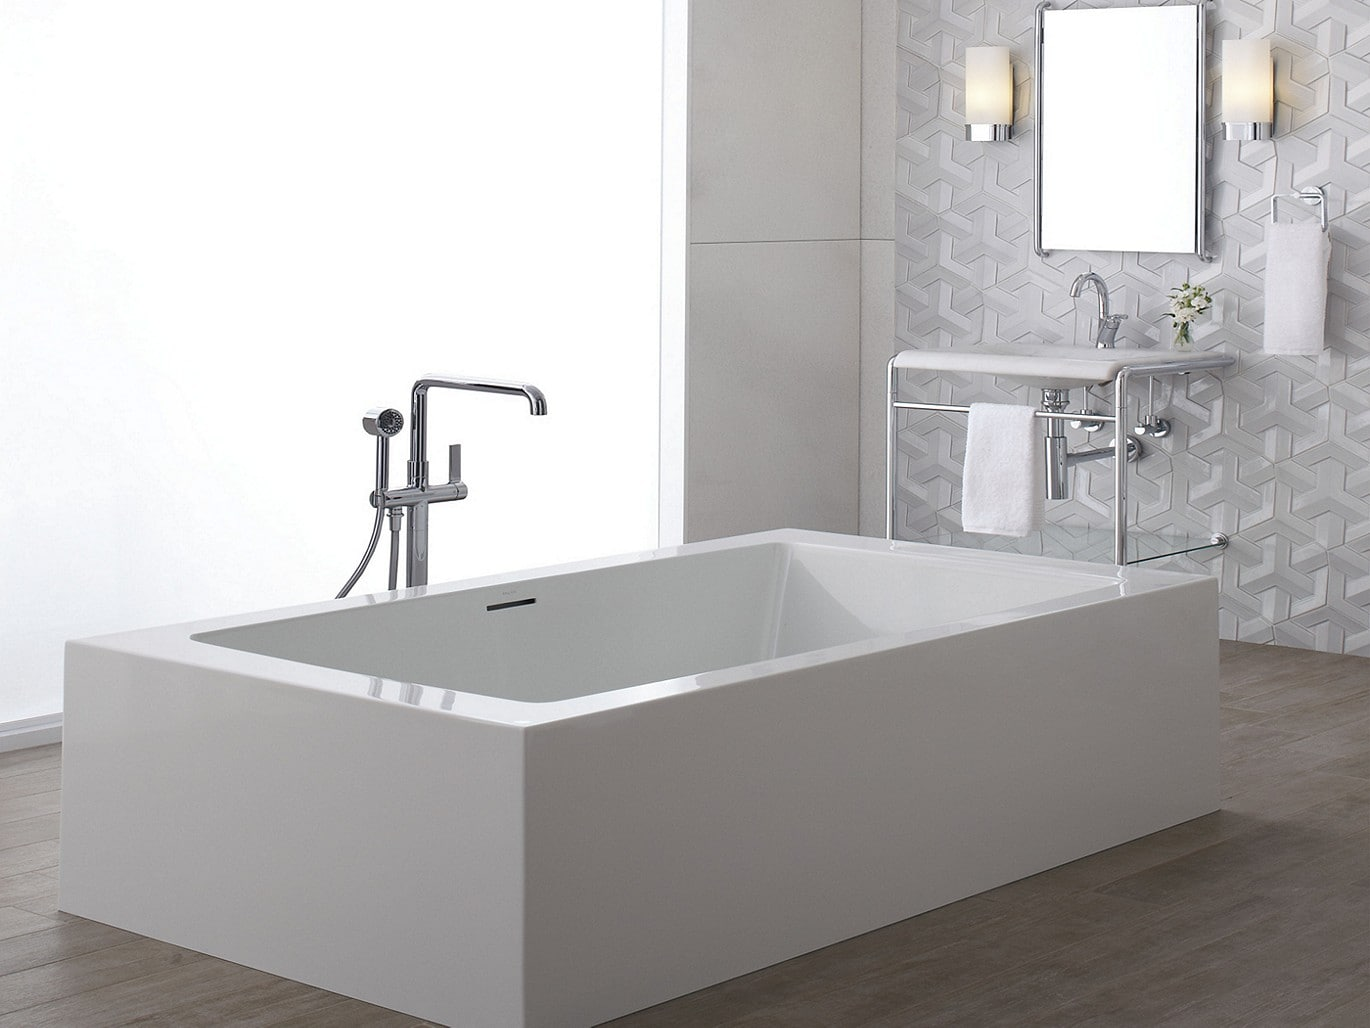 Kallista P24408-00-AD Nickel Silver One 8 GPM Freestanding Tub ...